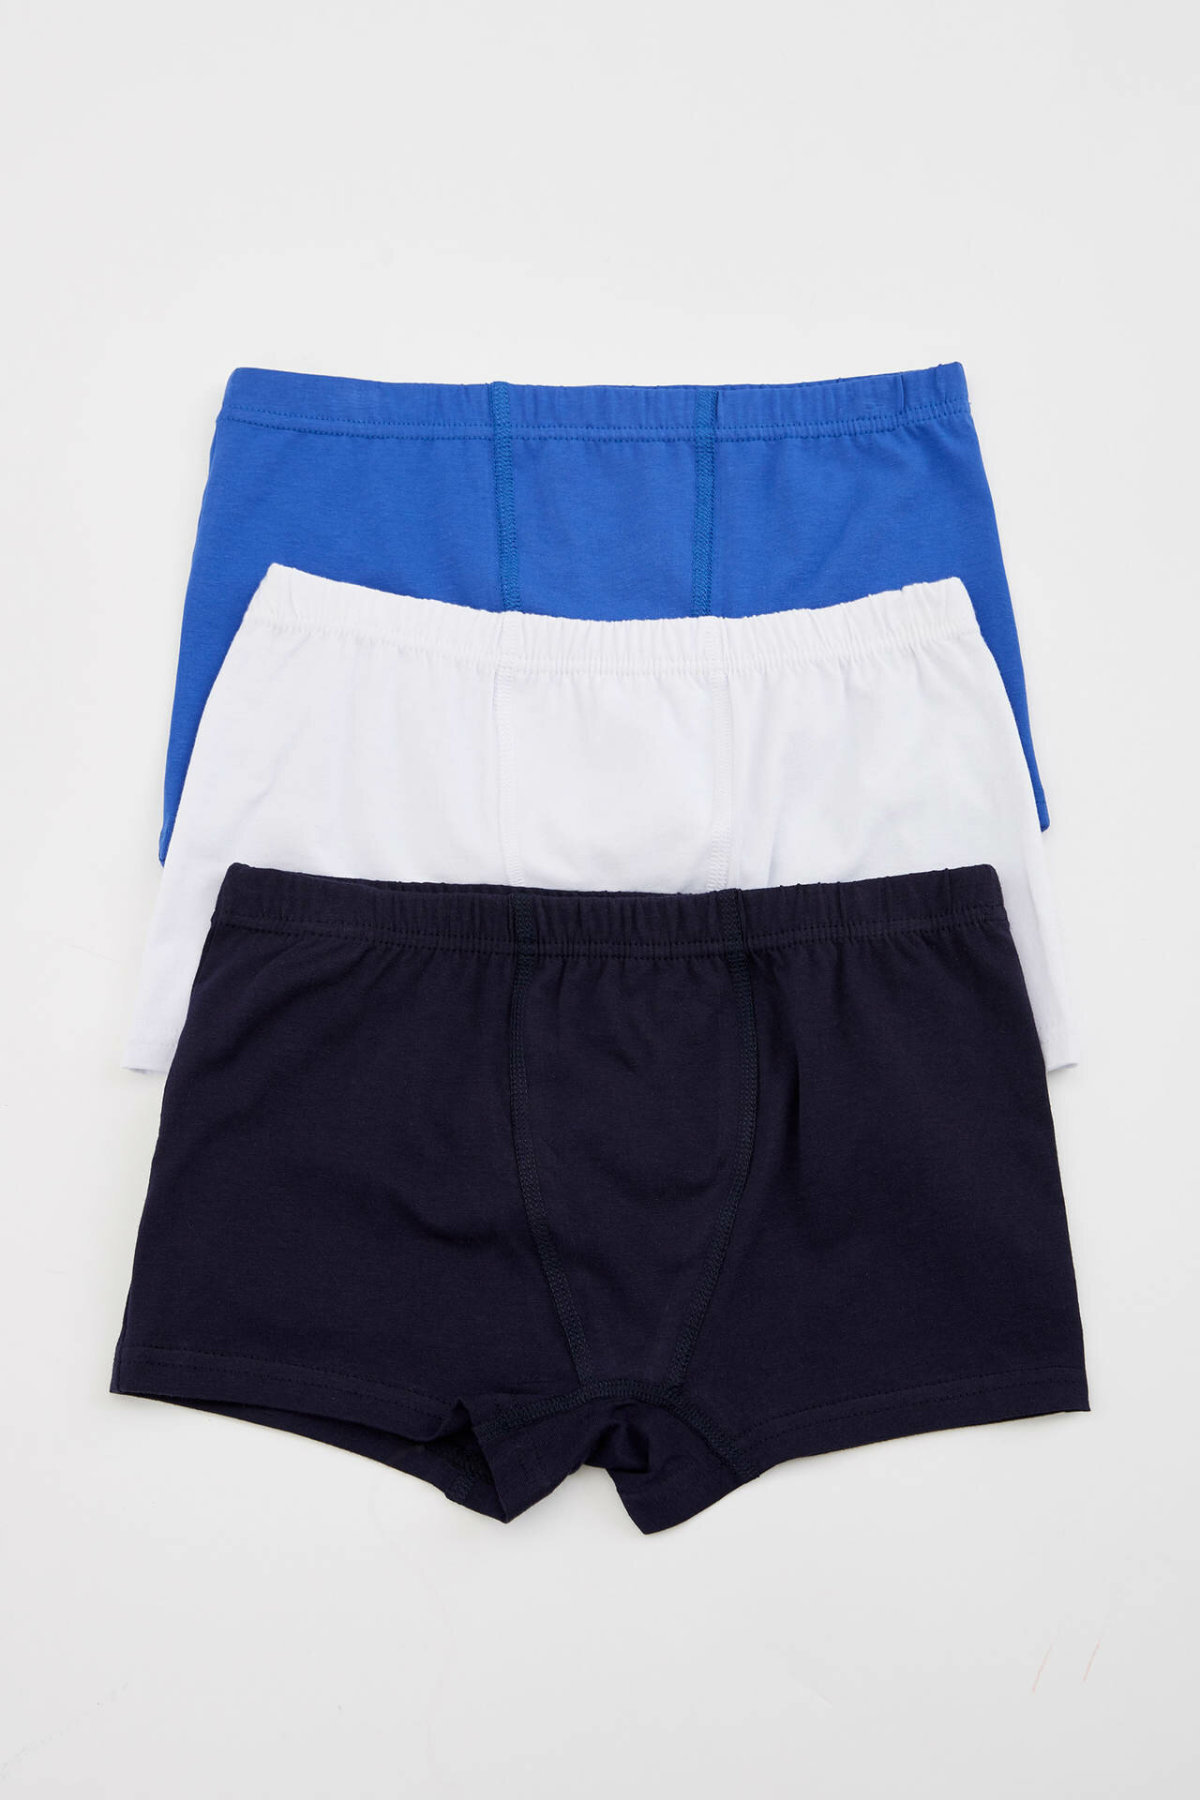 DeFacto Comfort Boy Three-pieces Knitted Boxer Boys Fashion Pure Color Underwear Kids High Elastic Panties New - L1285A619SM